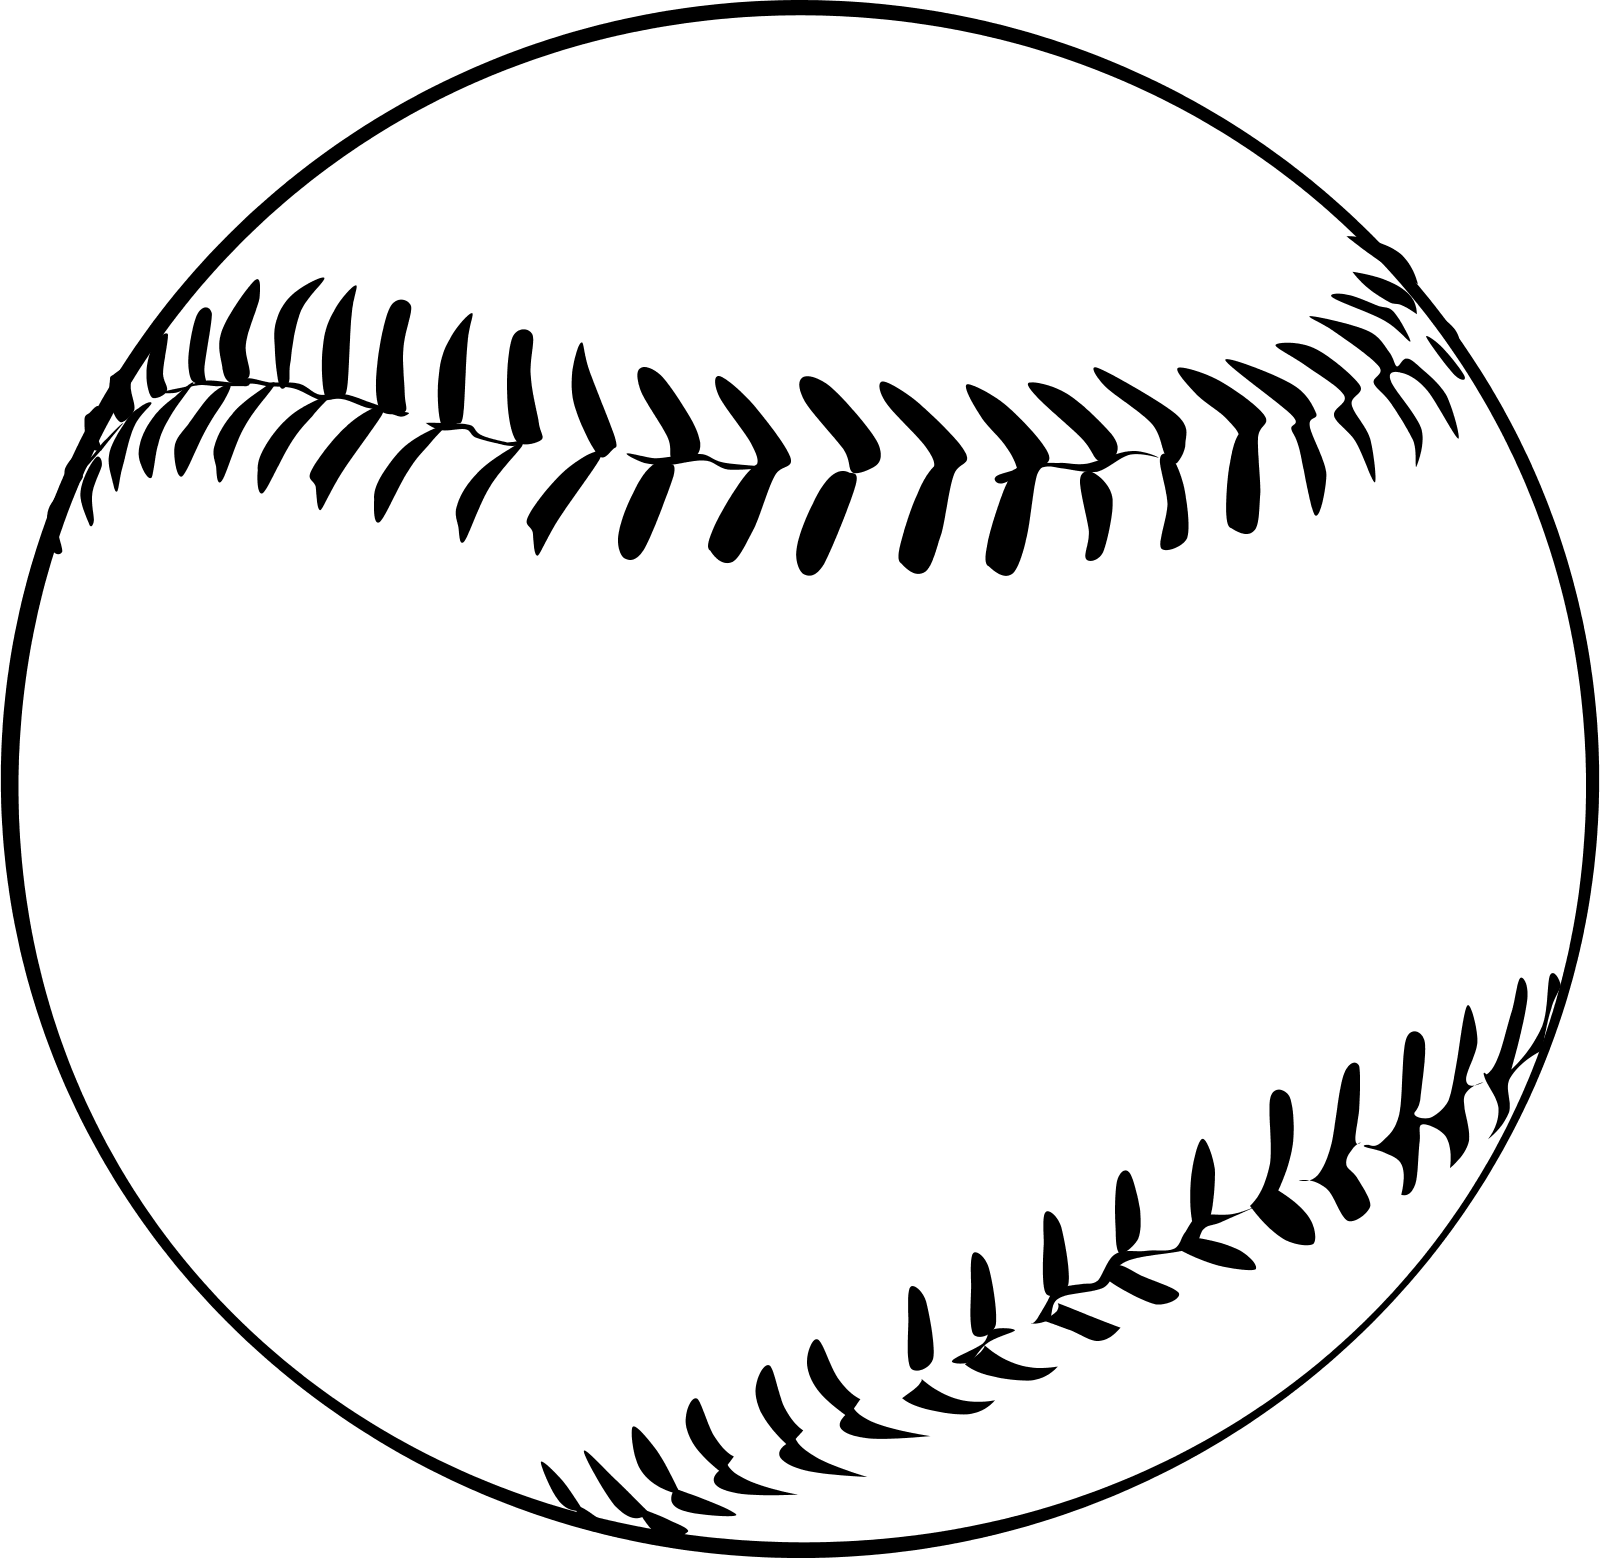 Download High Quality baseball clipart black and white ball.